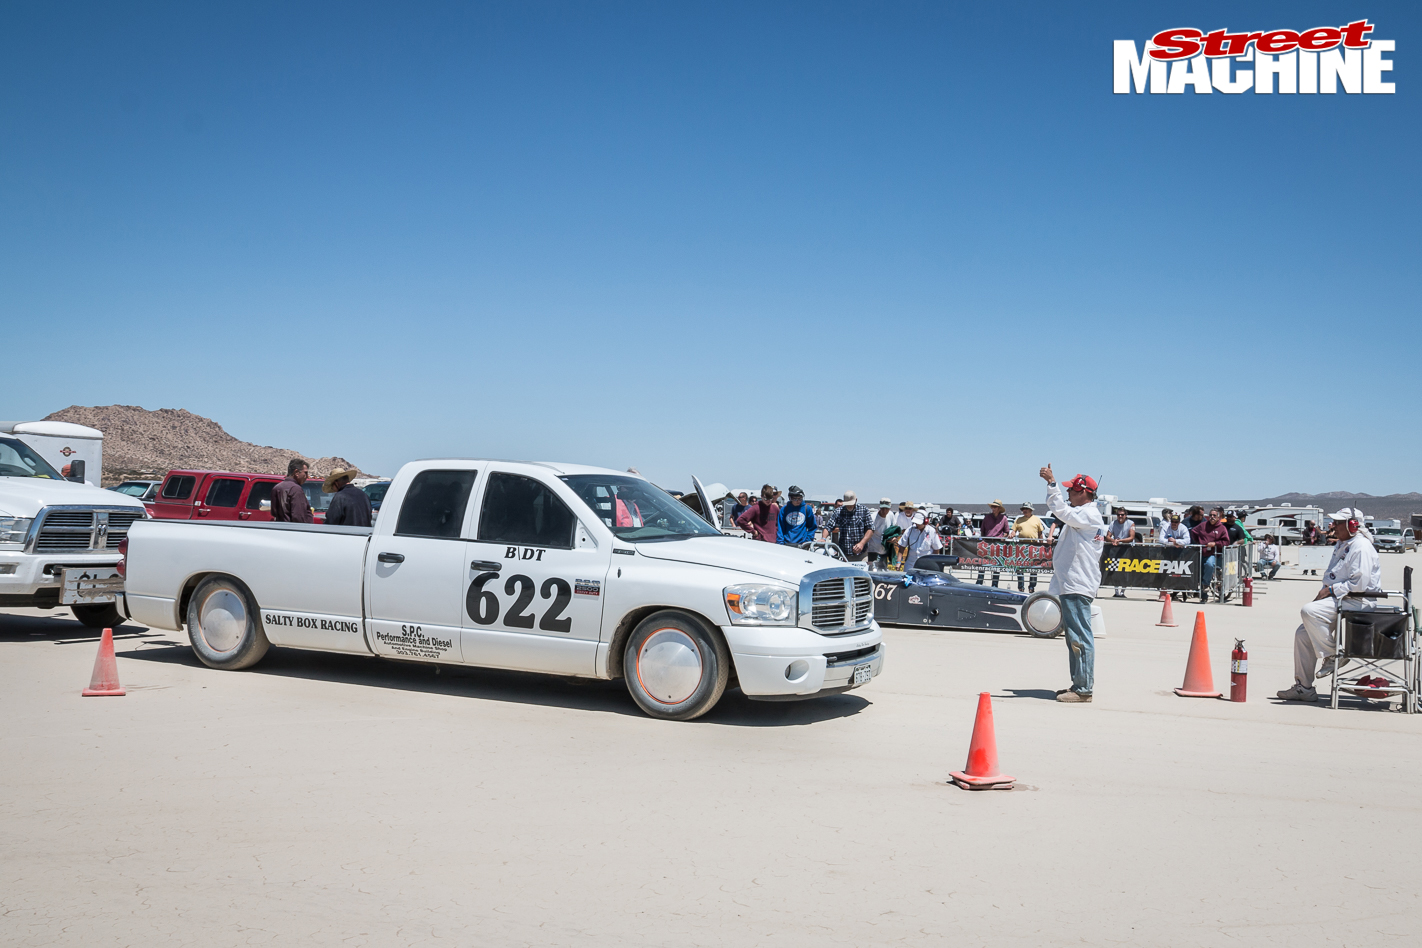 Dodge -Ram -El -Mirage -Salty -Box -Racing -lineup -0628